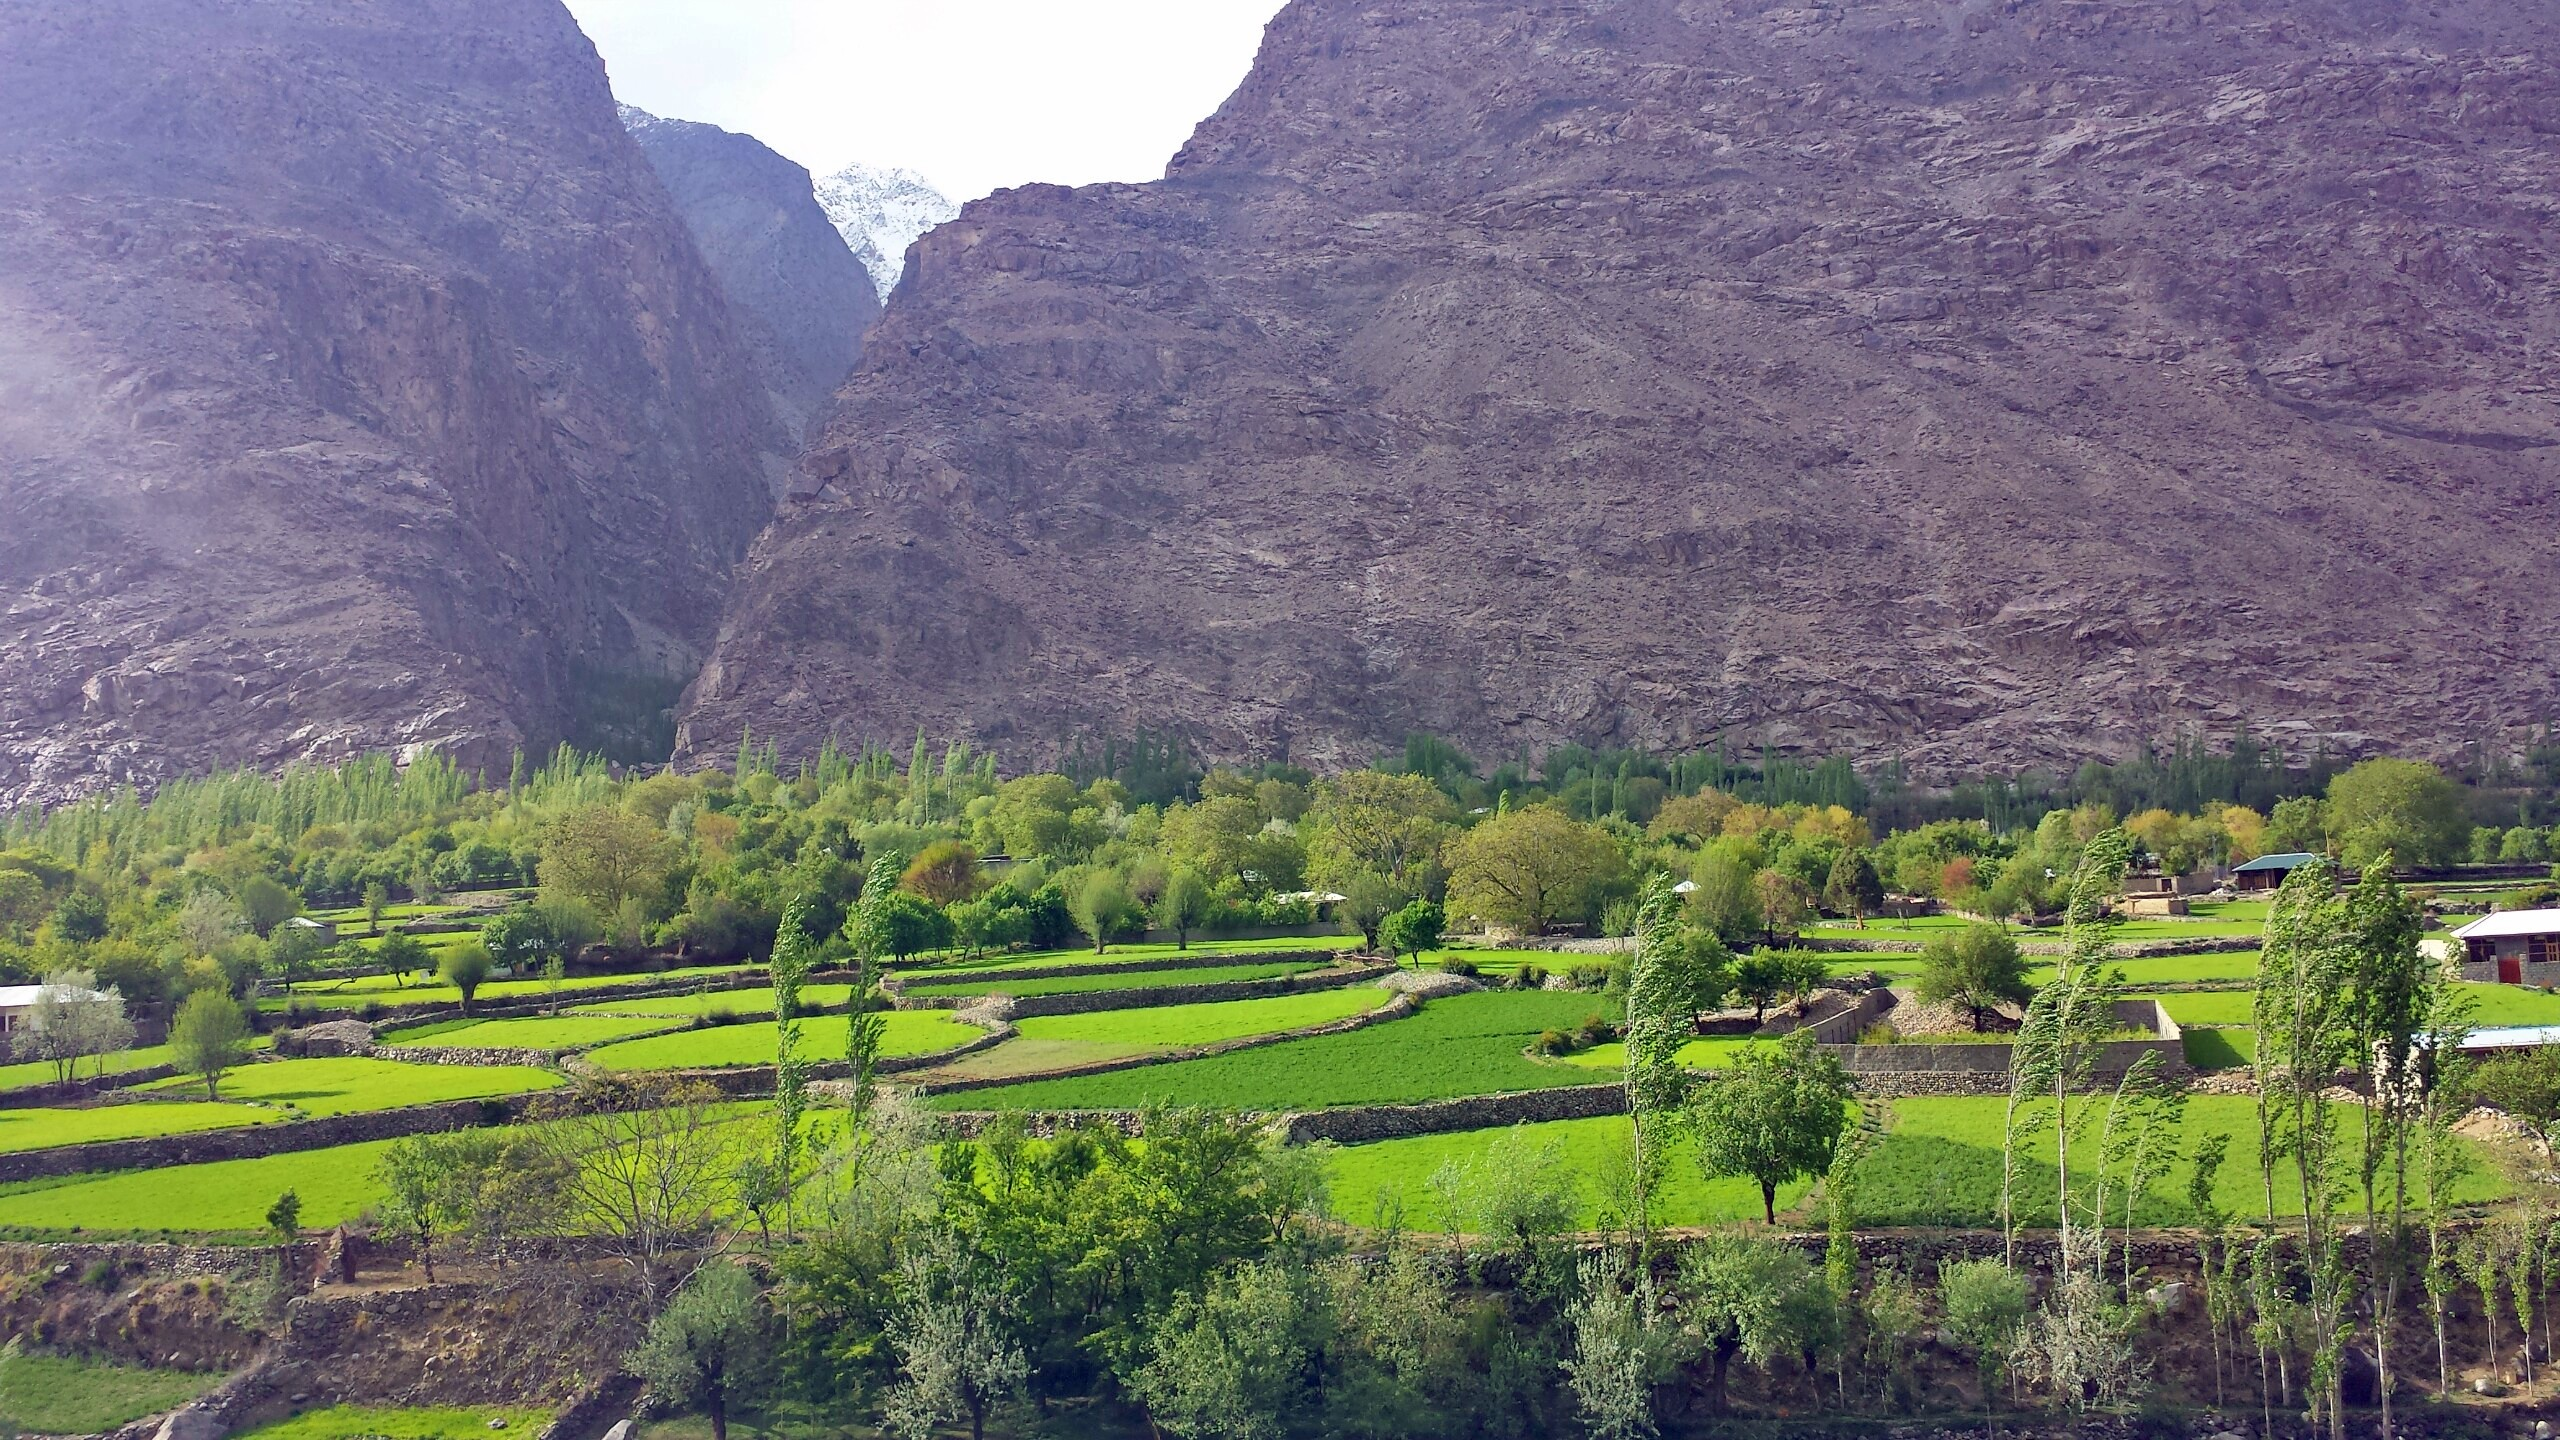 Ghizer Village